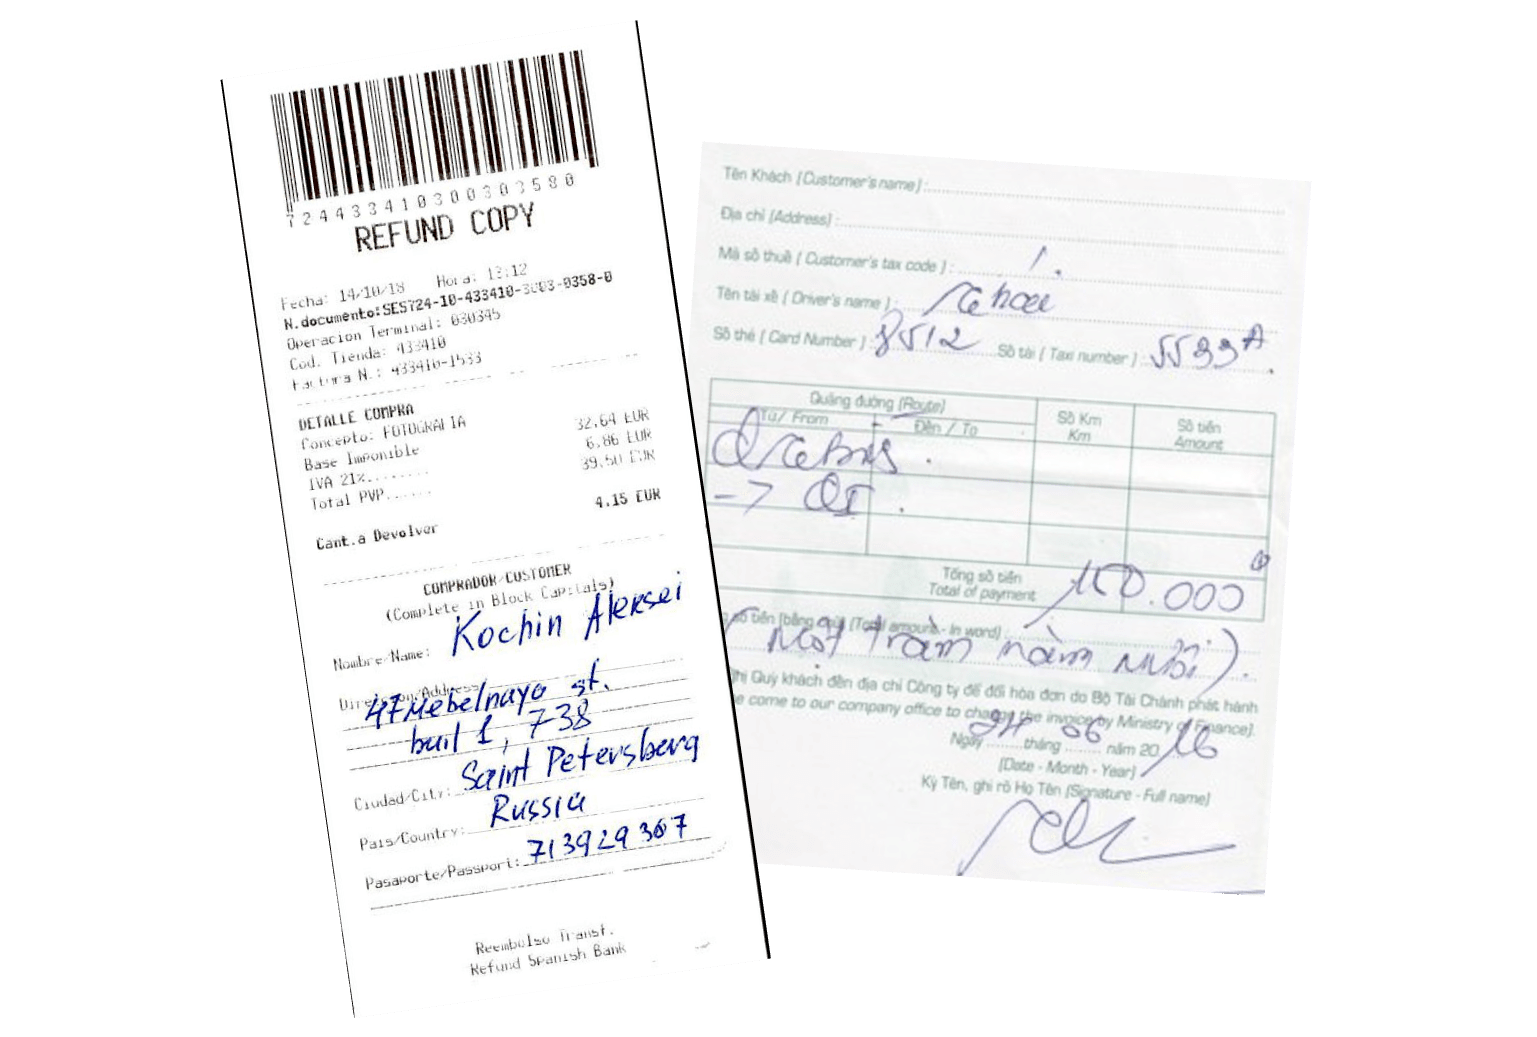 Recognize handwriting on forms and documents